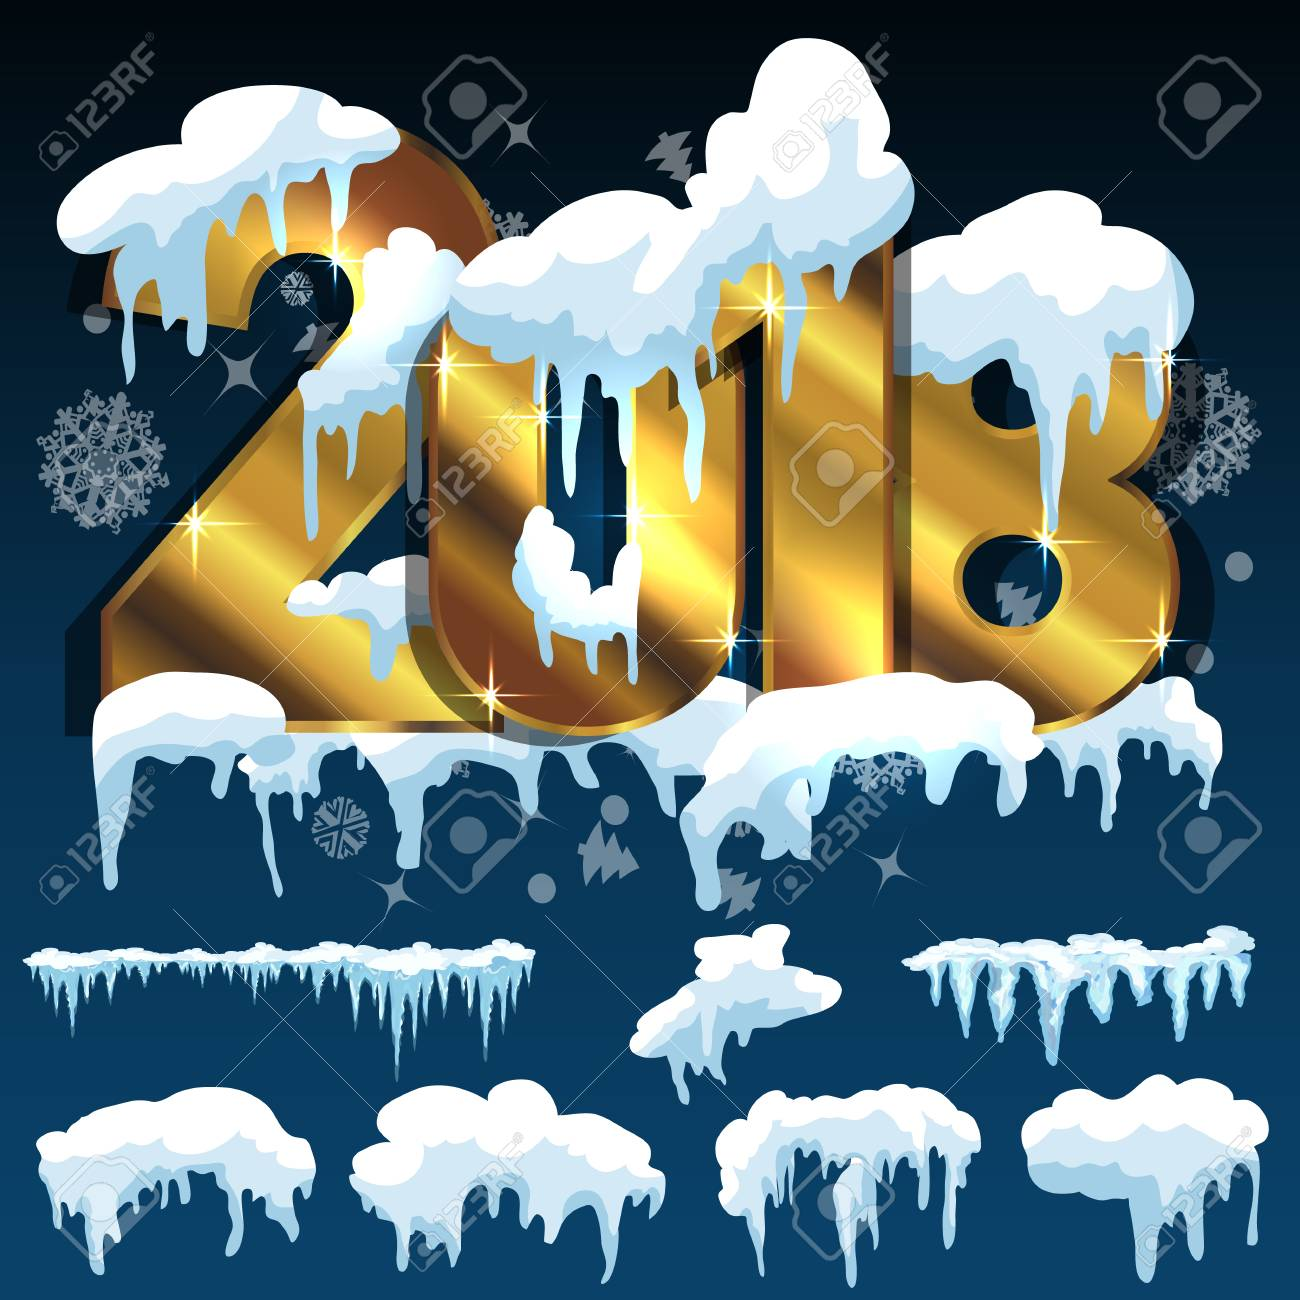 new year frozen ice texture text 2018 snow ice icicle set winter design white blue snow template snowy